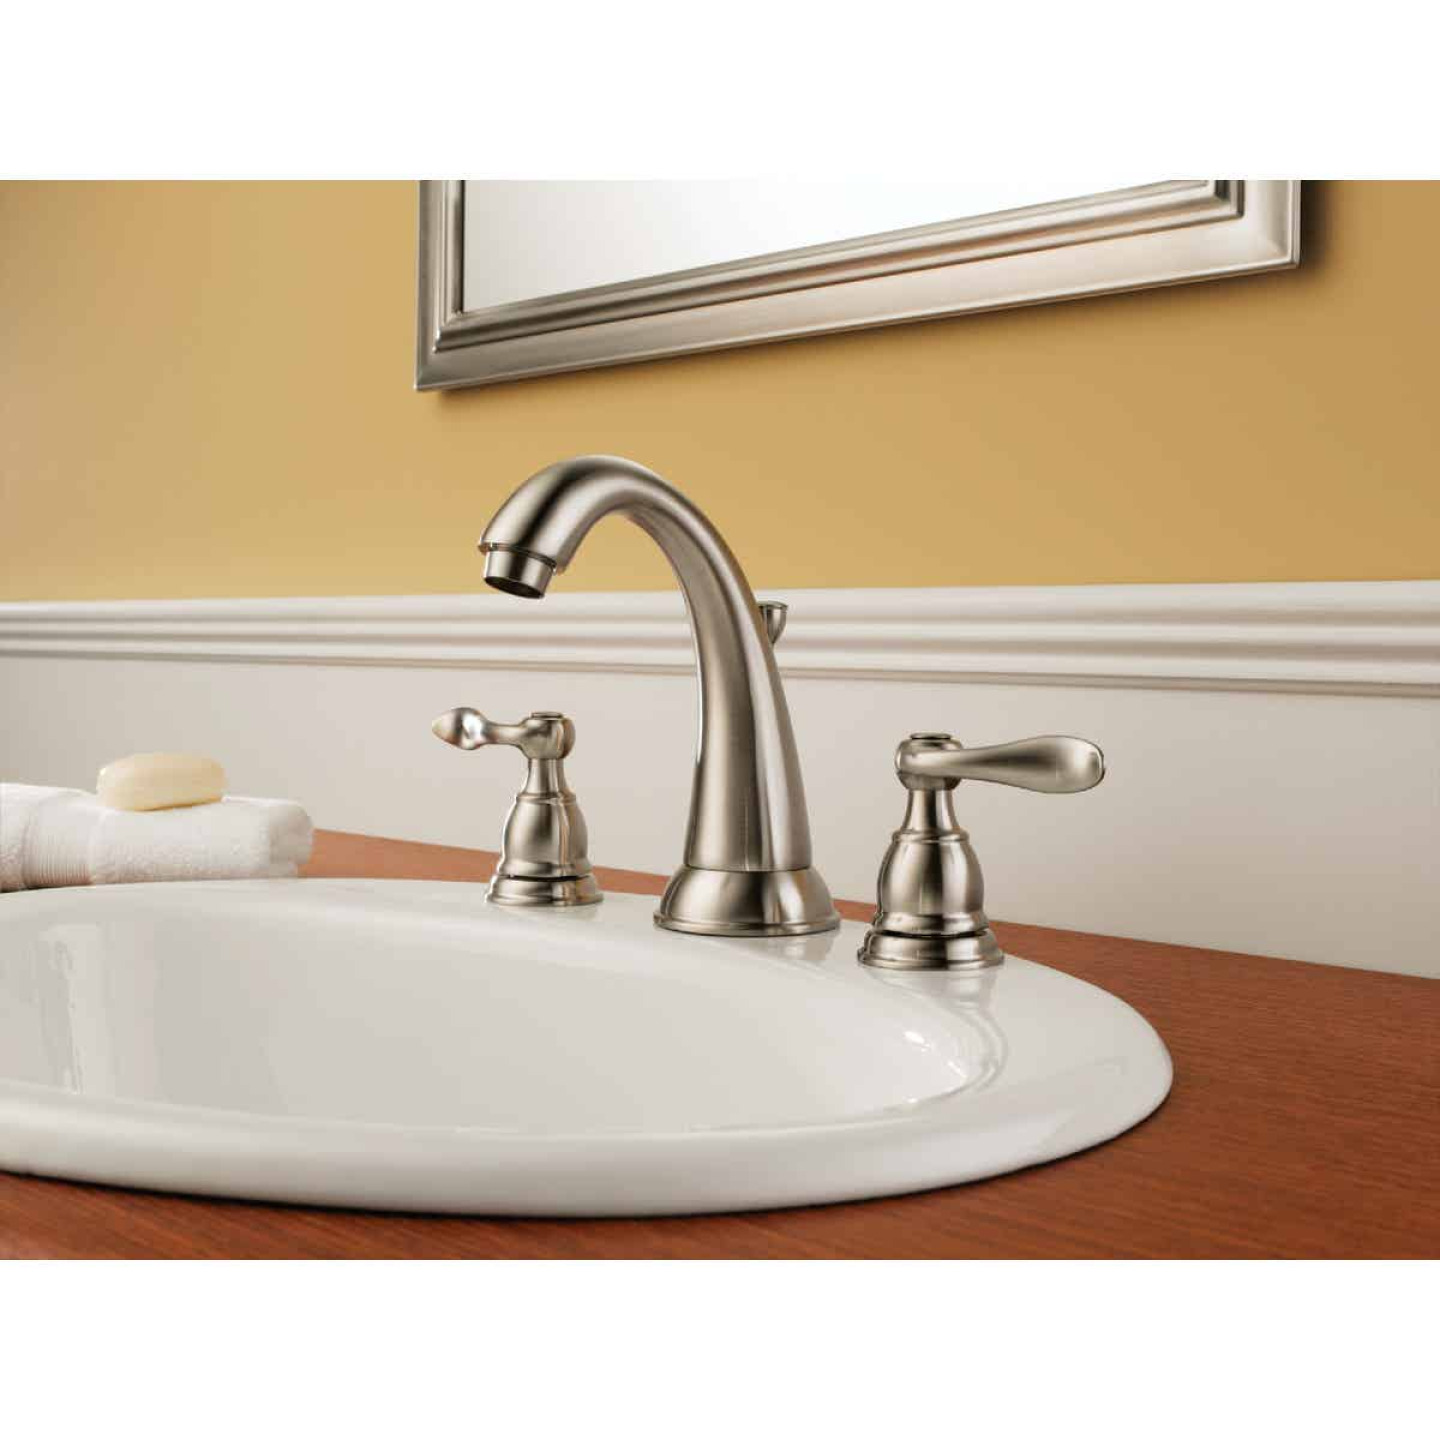 Delta Windmere Stainless 2-Handle Lever 6 In. to 16 In. Widespread Bathroom Faucet with Pop-Up Image 2